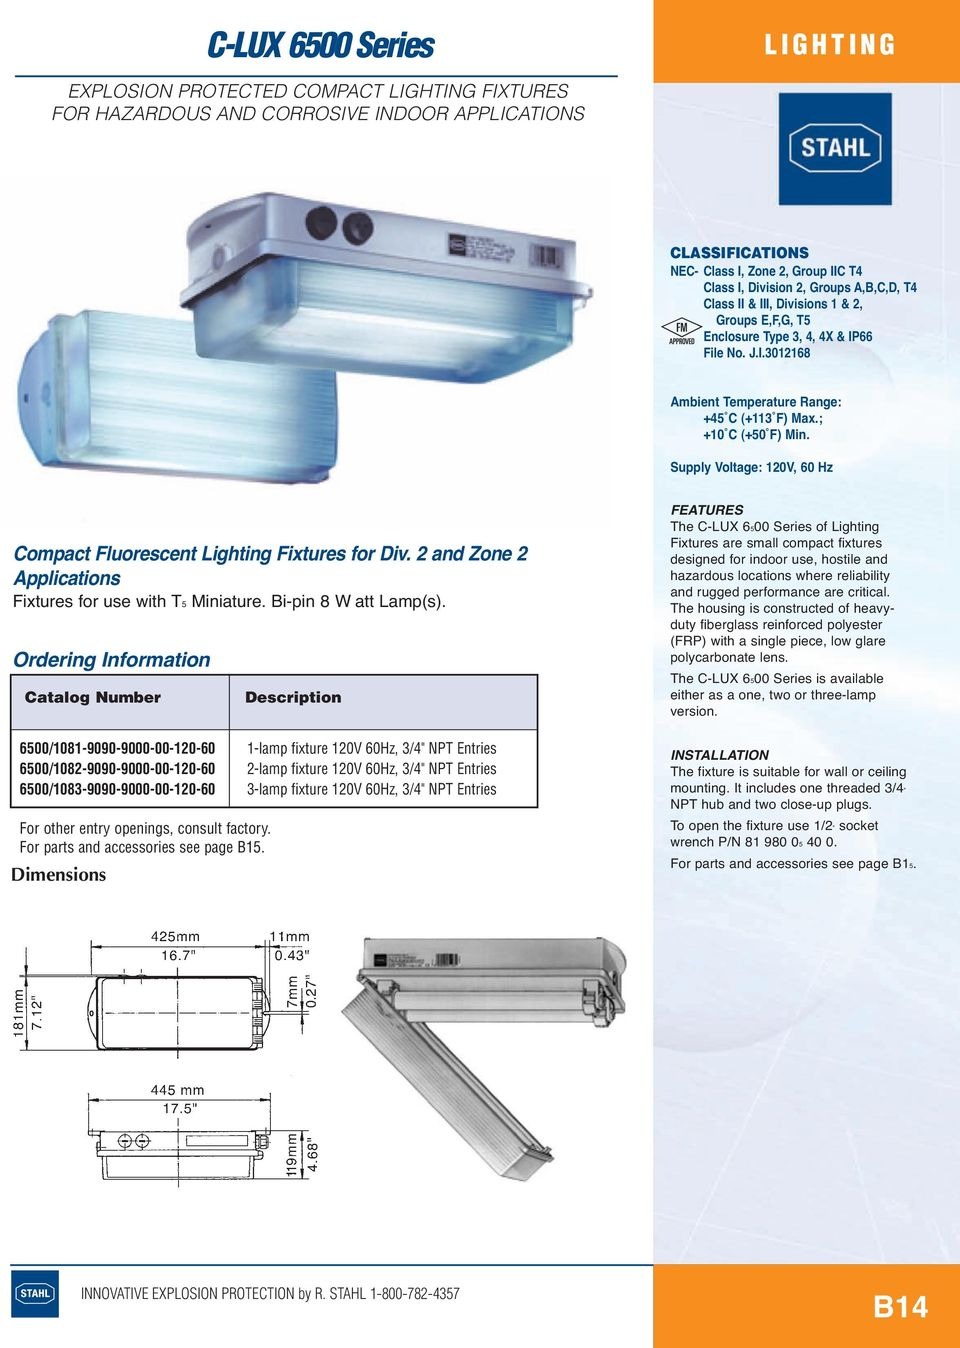 Supply Voltage: 120V, 60 Hz Compact Fluorescent Lighting Fixtures for Div. 2 and Zone 2 Applications Fixtures for use with T5 Miniature. Bi-pin 8 W att Lamp(s).